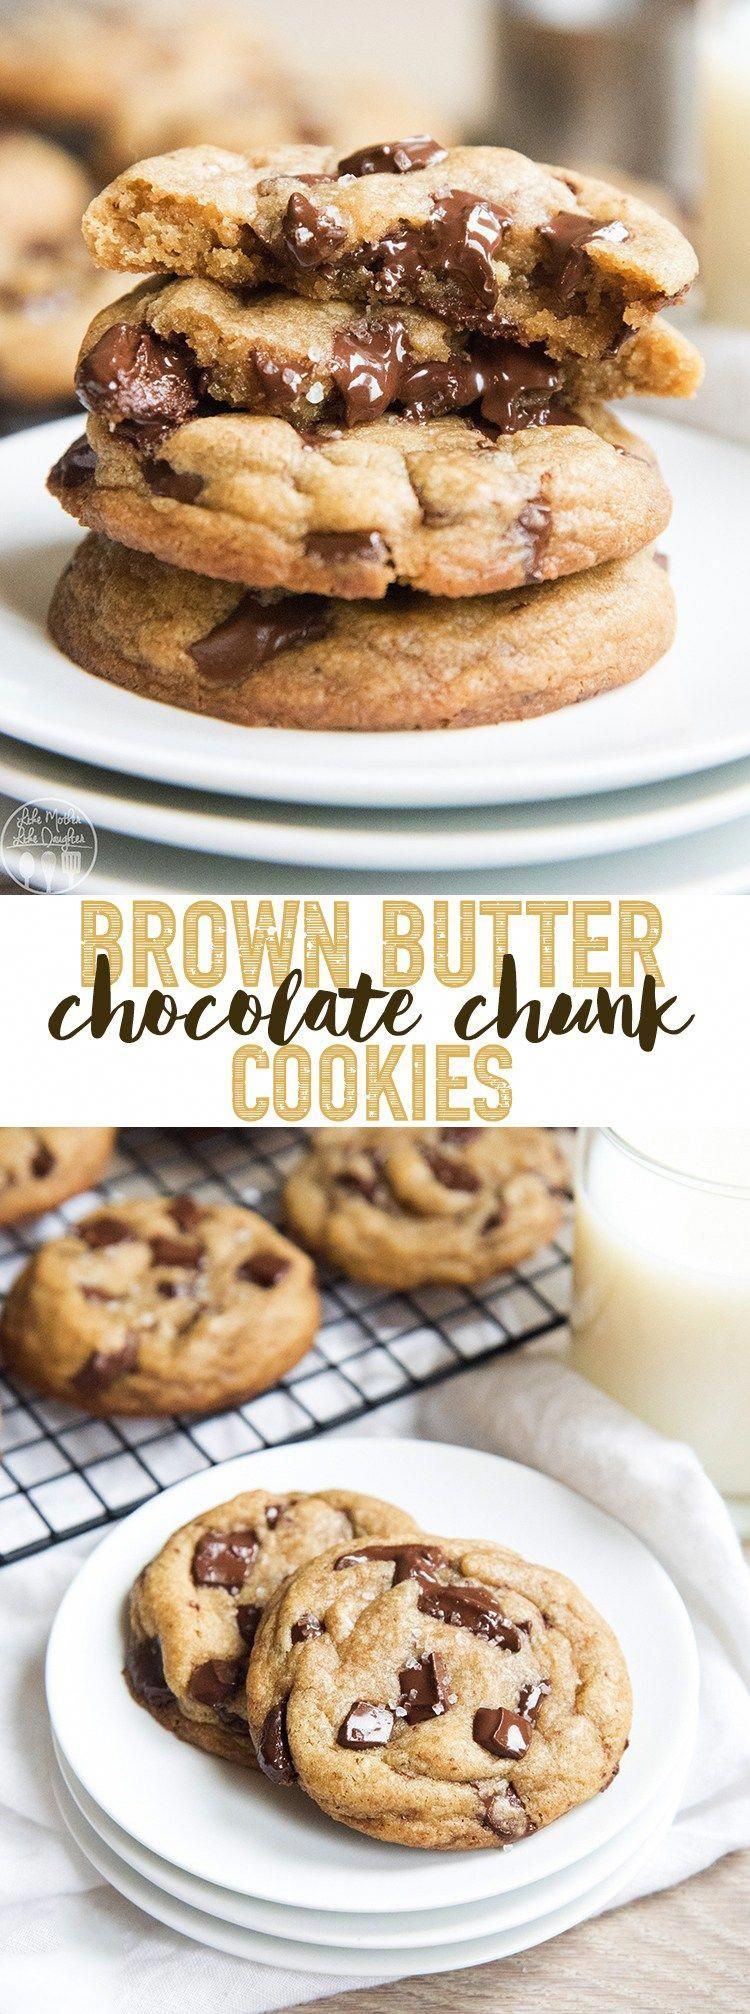 These brown butter chocolate chunk cookies are the perfect rich buttery cookies packed full of melty chocolate in each bite